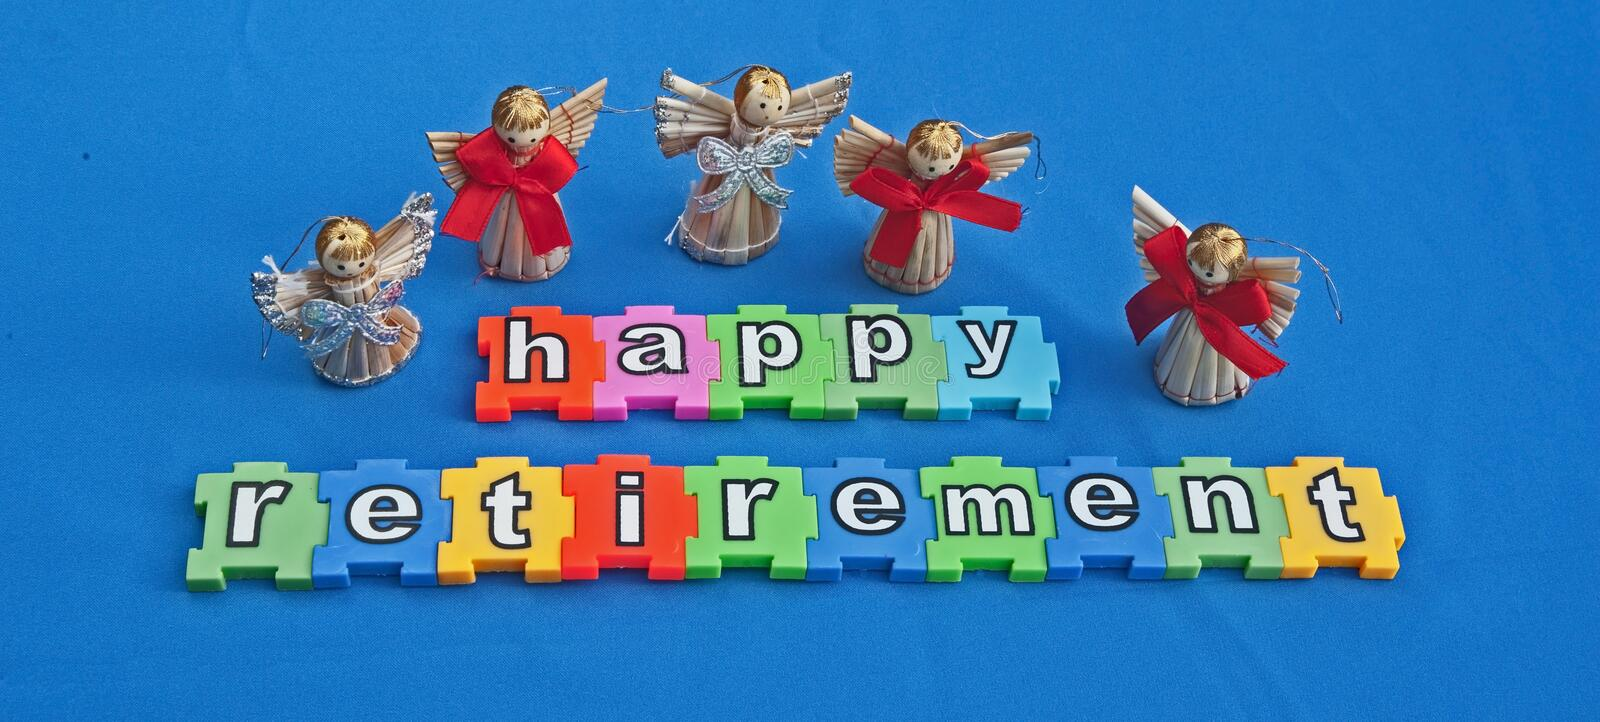 Happy retirement. Message Happy Retirement in lower case white letters on colorful jigsaw style pieces with band of angels above isolated on blue background royalty free stock photo